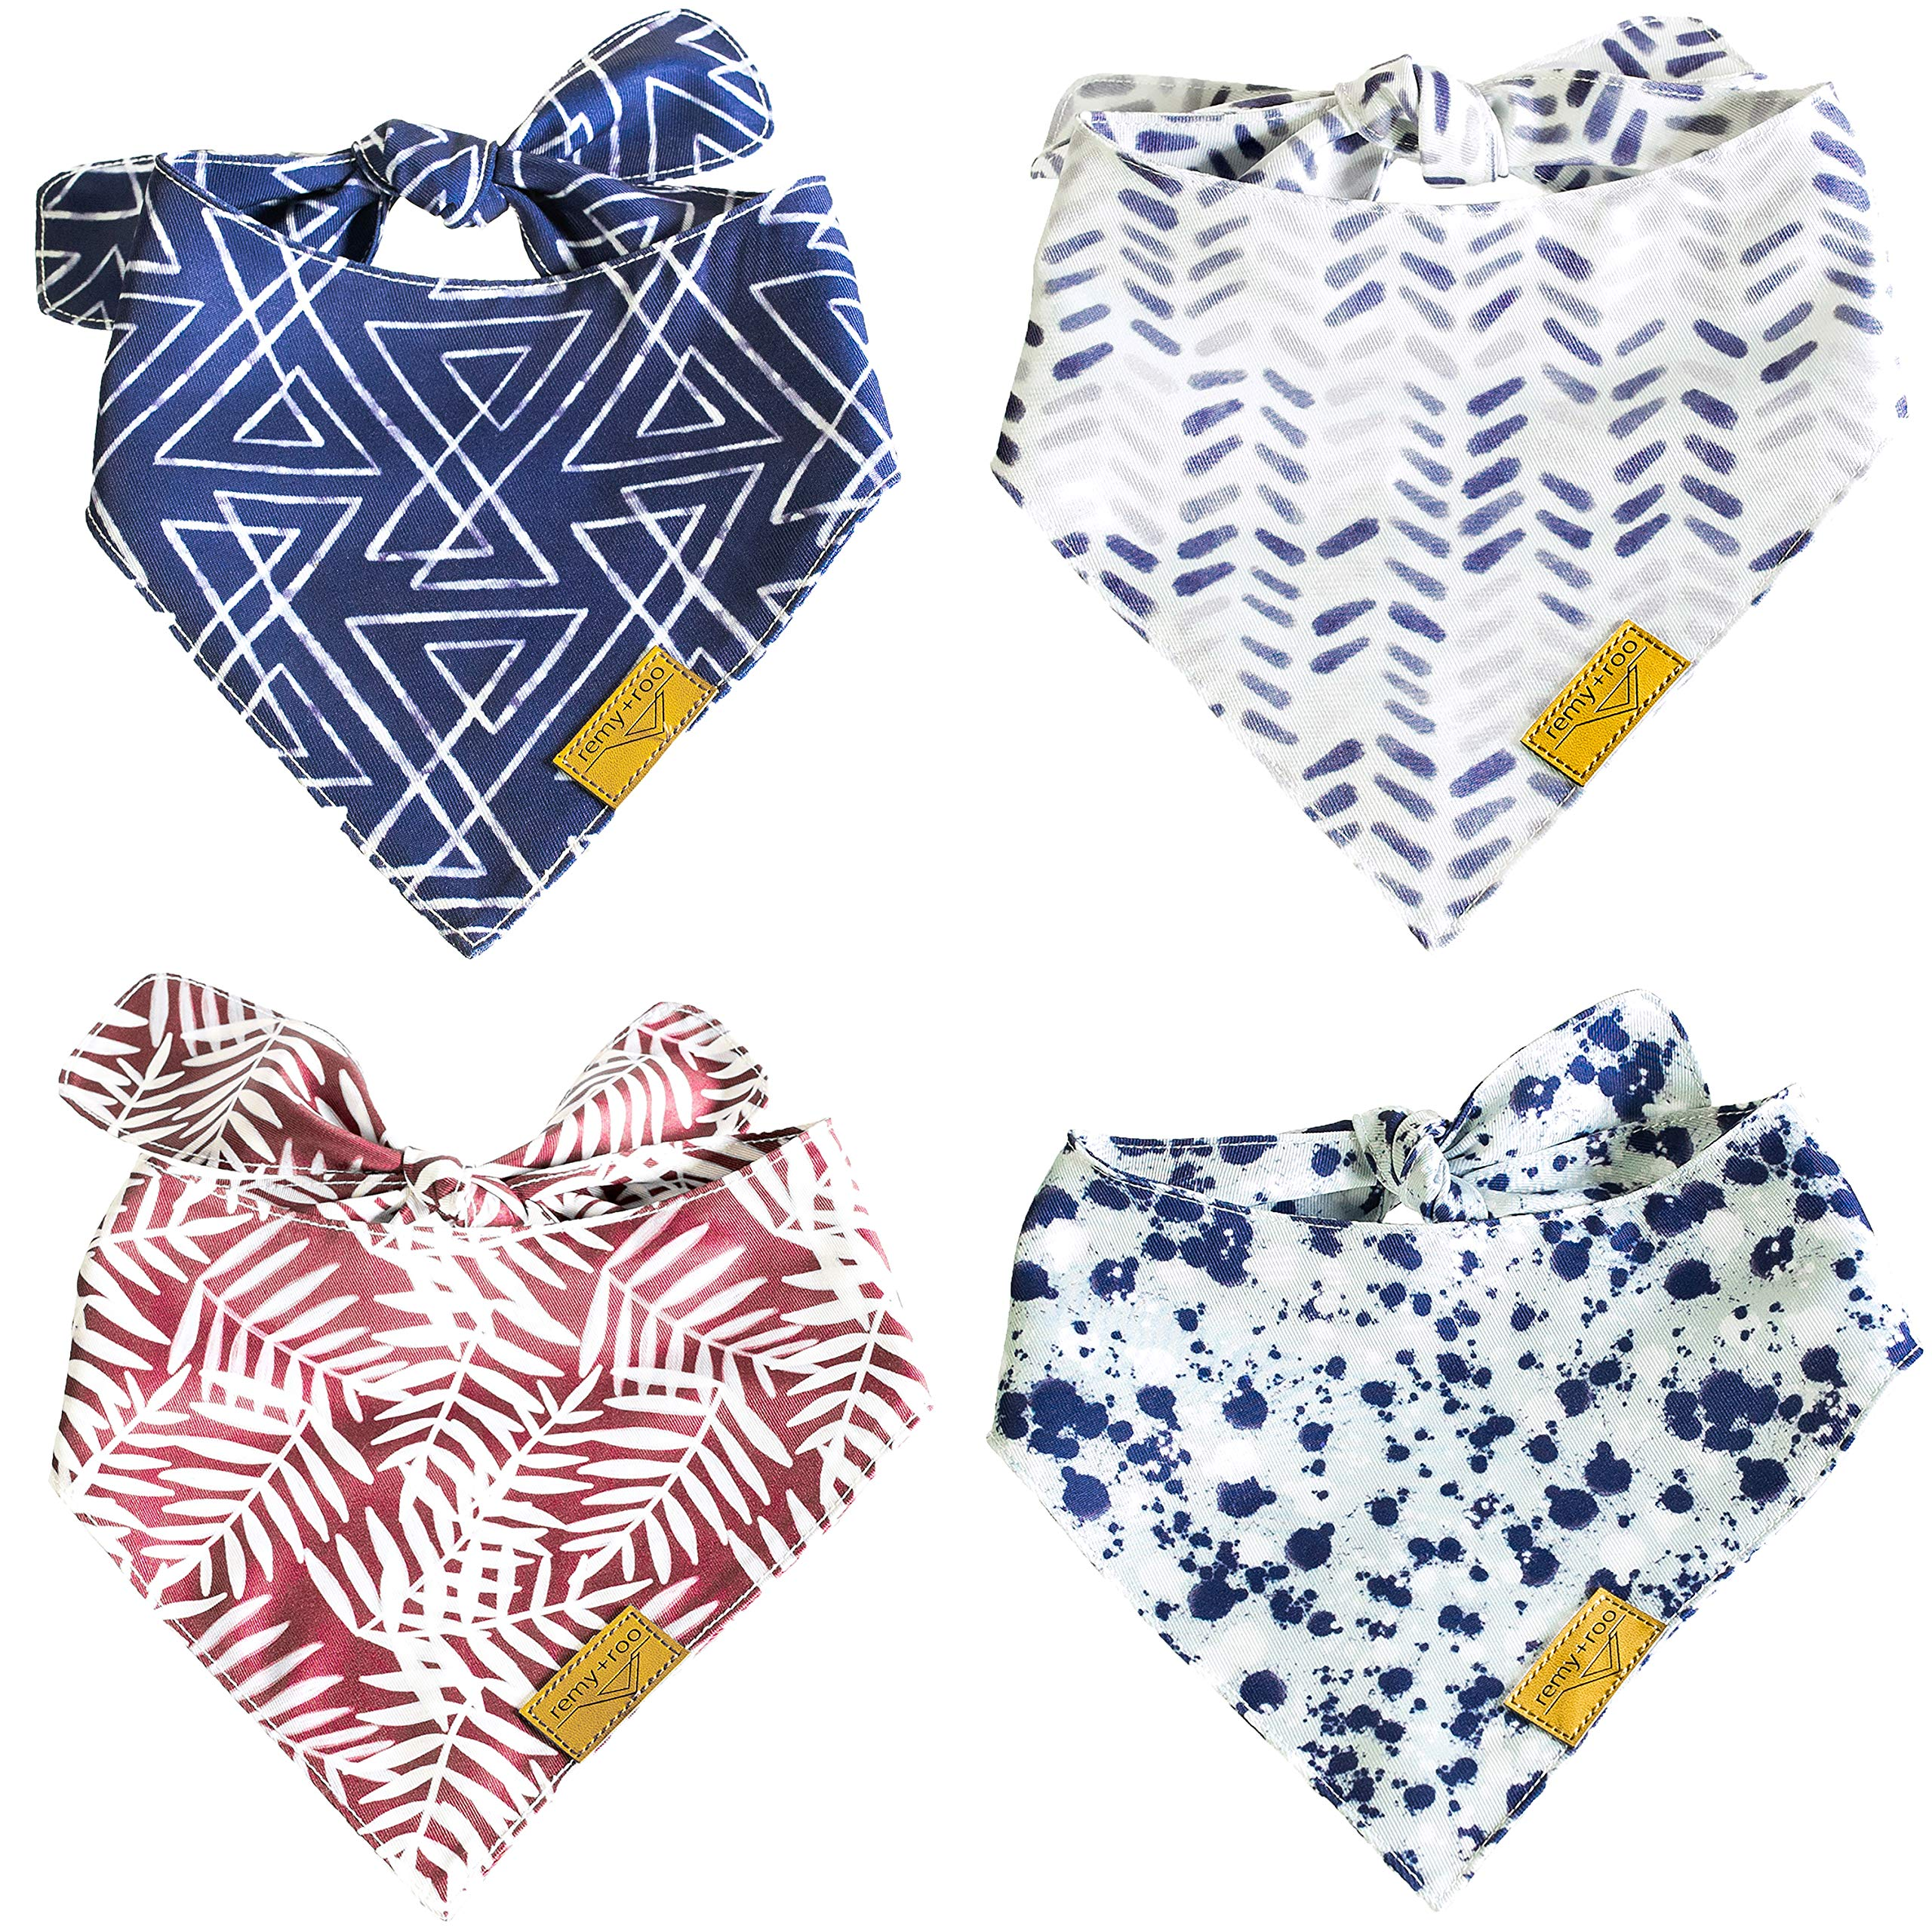 Remy+Roo Dog Bandanas - 4 Pack Premium Durable Fabric, Unique Adjustable Design,The Classic, (Small)